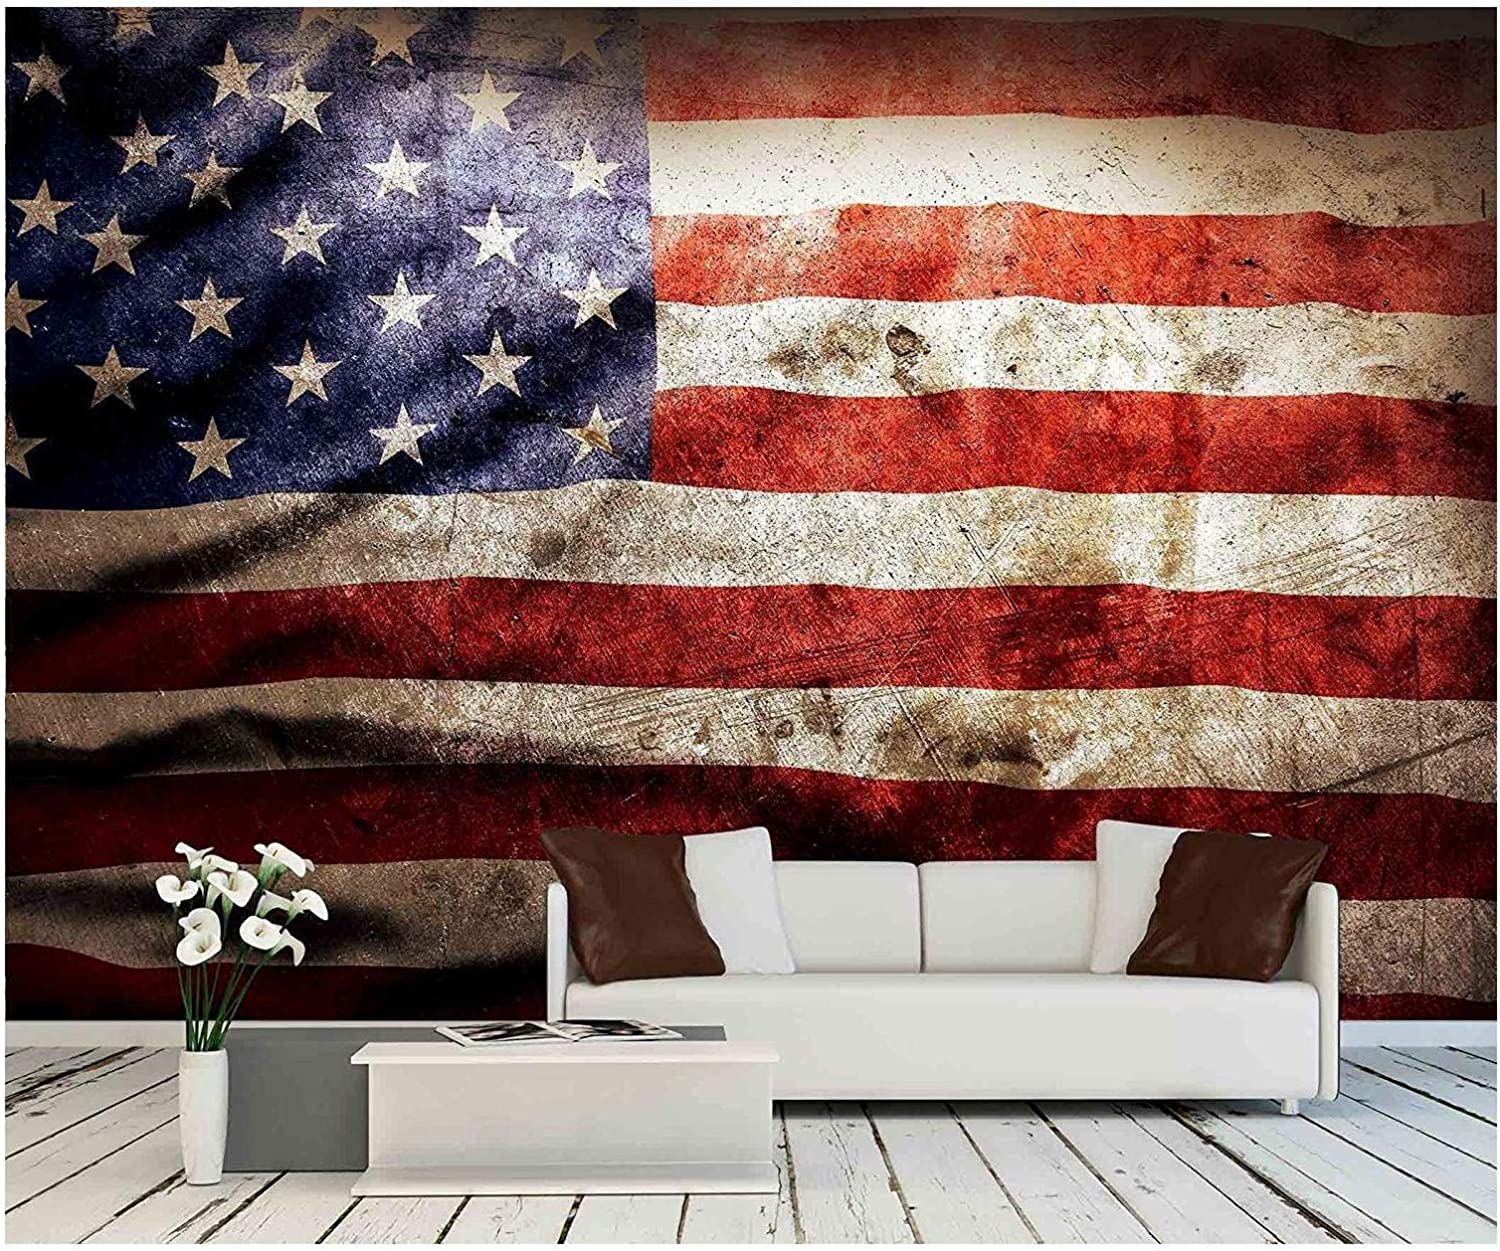 Wall26 Closeup Of Grunge American Flag Removable Wall Mural